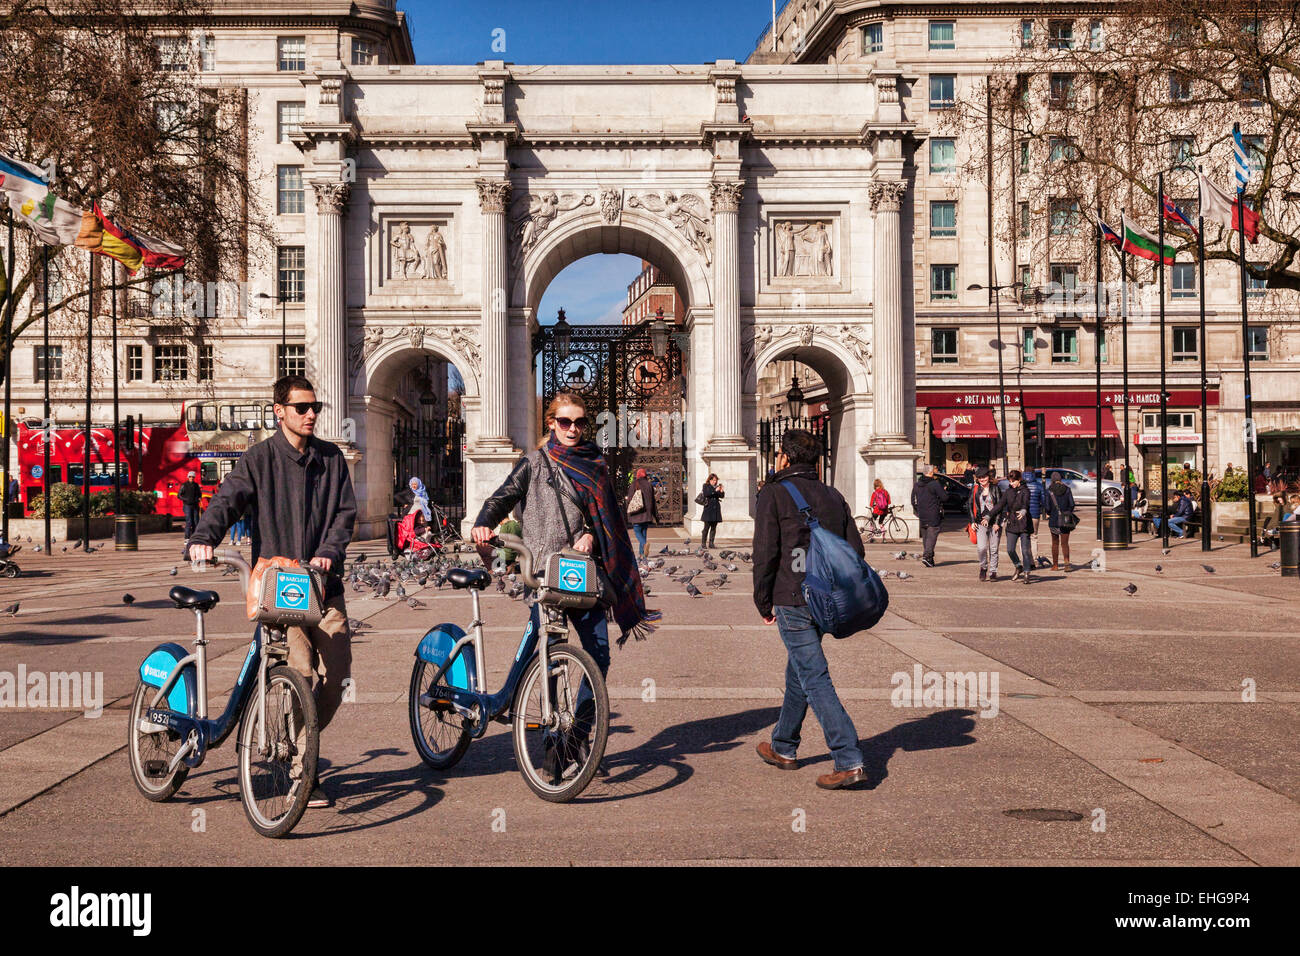 Marble Arch, London, England. Tourists walk  with hired cycles. - Stock Image